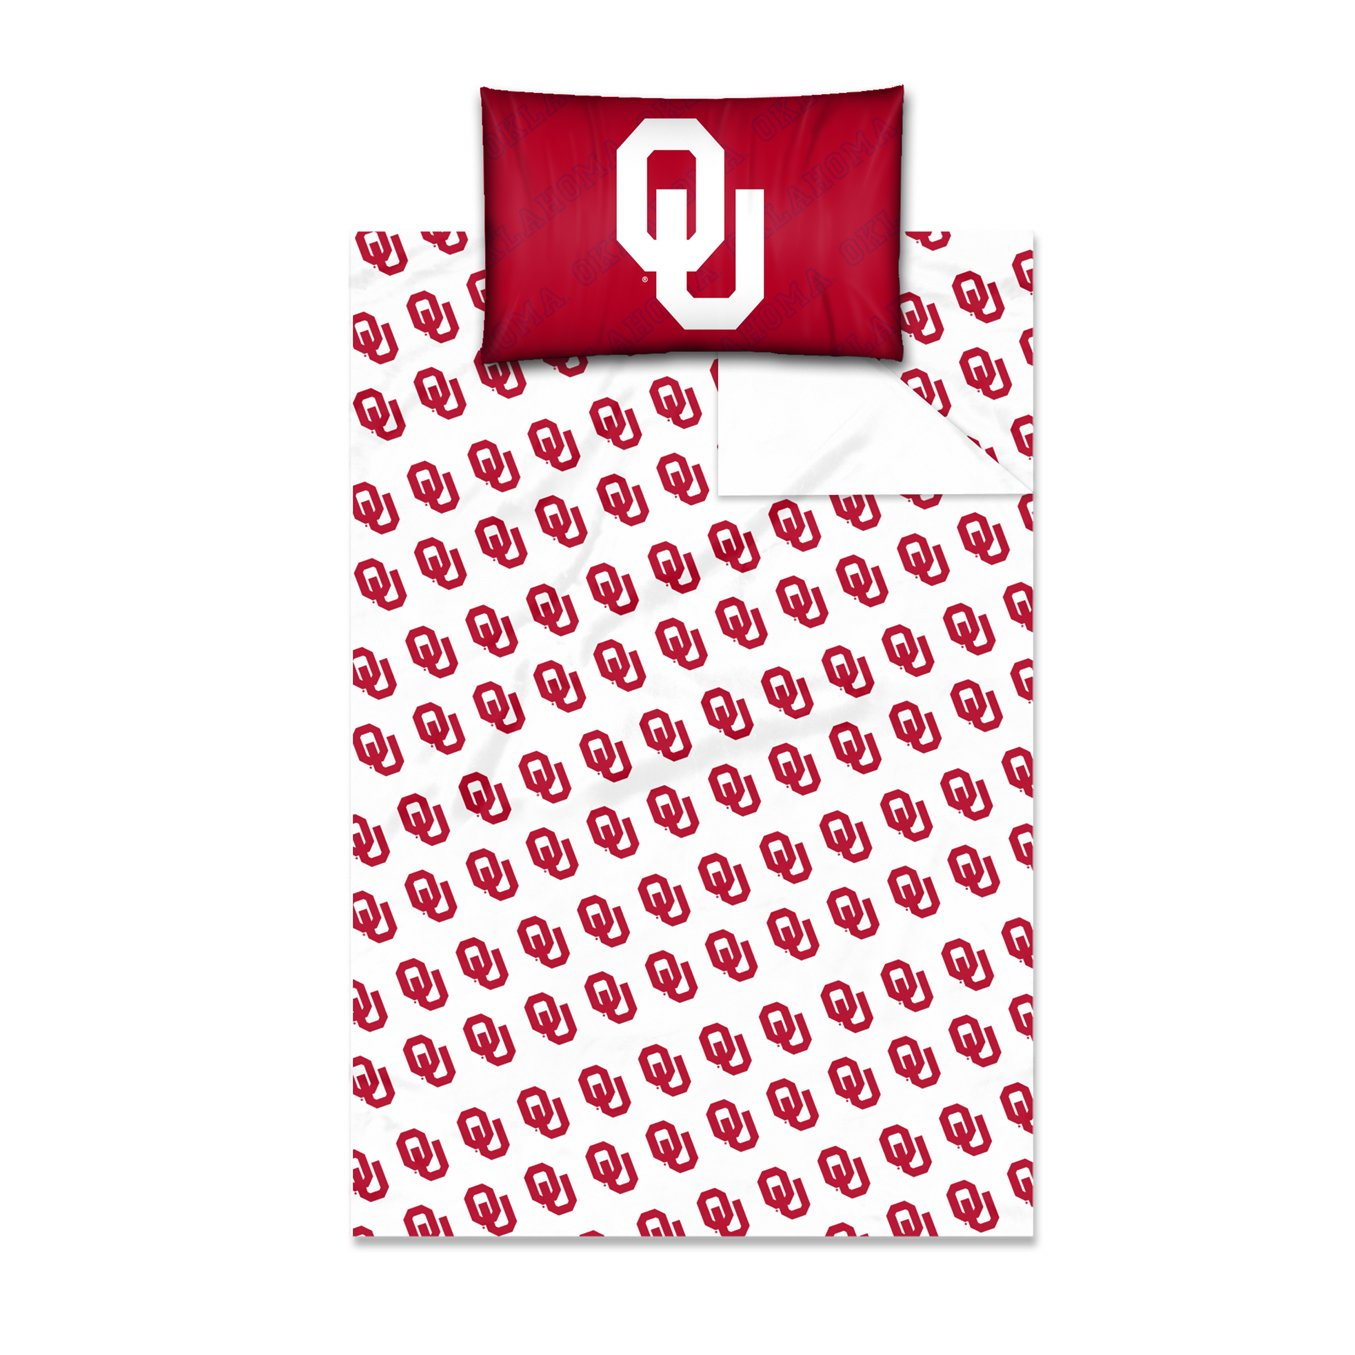 Oklahoma OFFICIAL Collegiate, Bedding Twin Sheet Set (1 Flat 66 x 96, 1 Fitted 39 x 75 + 12 pocket, and 1 Pillowcase 20 x 30)